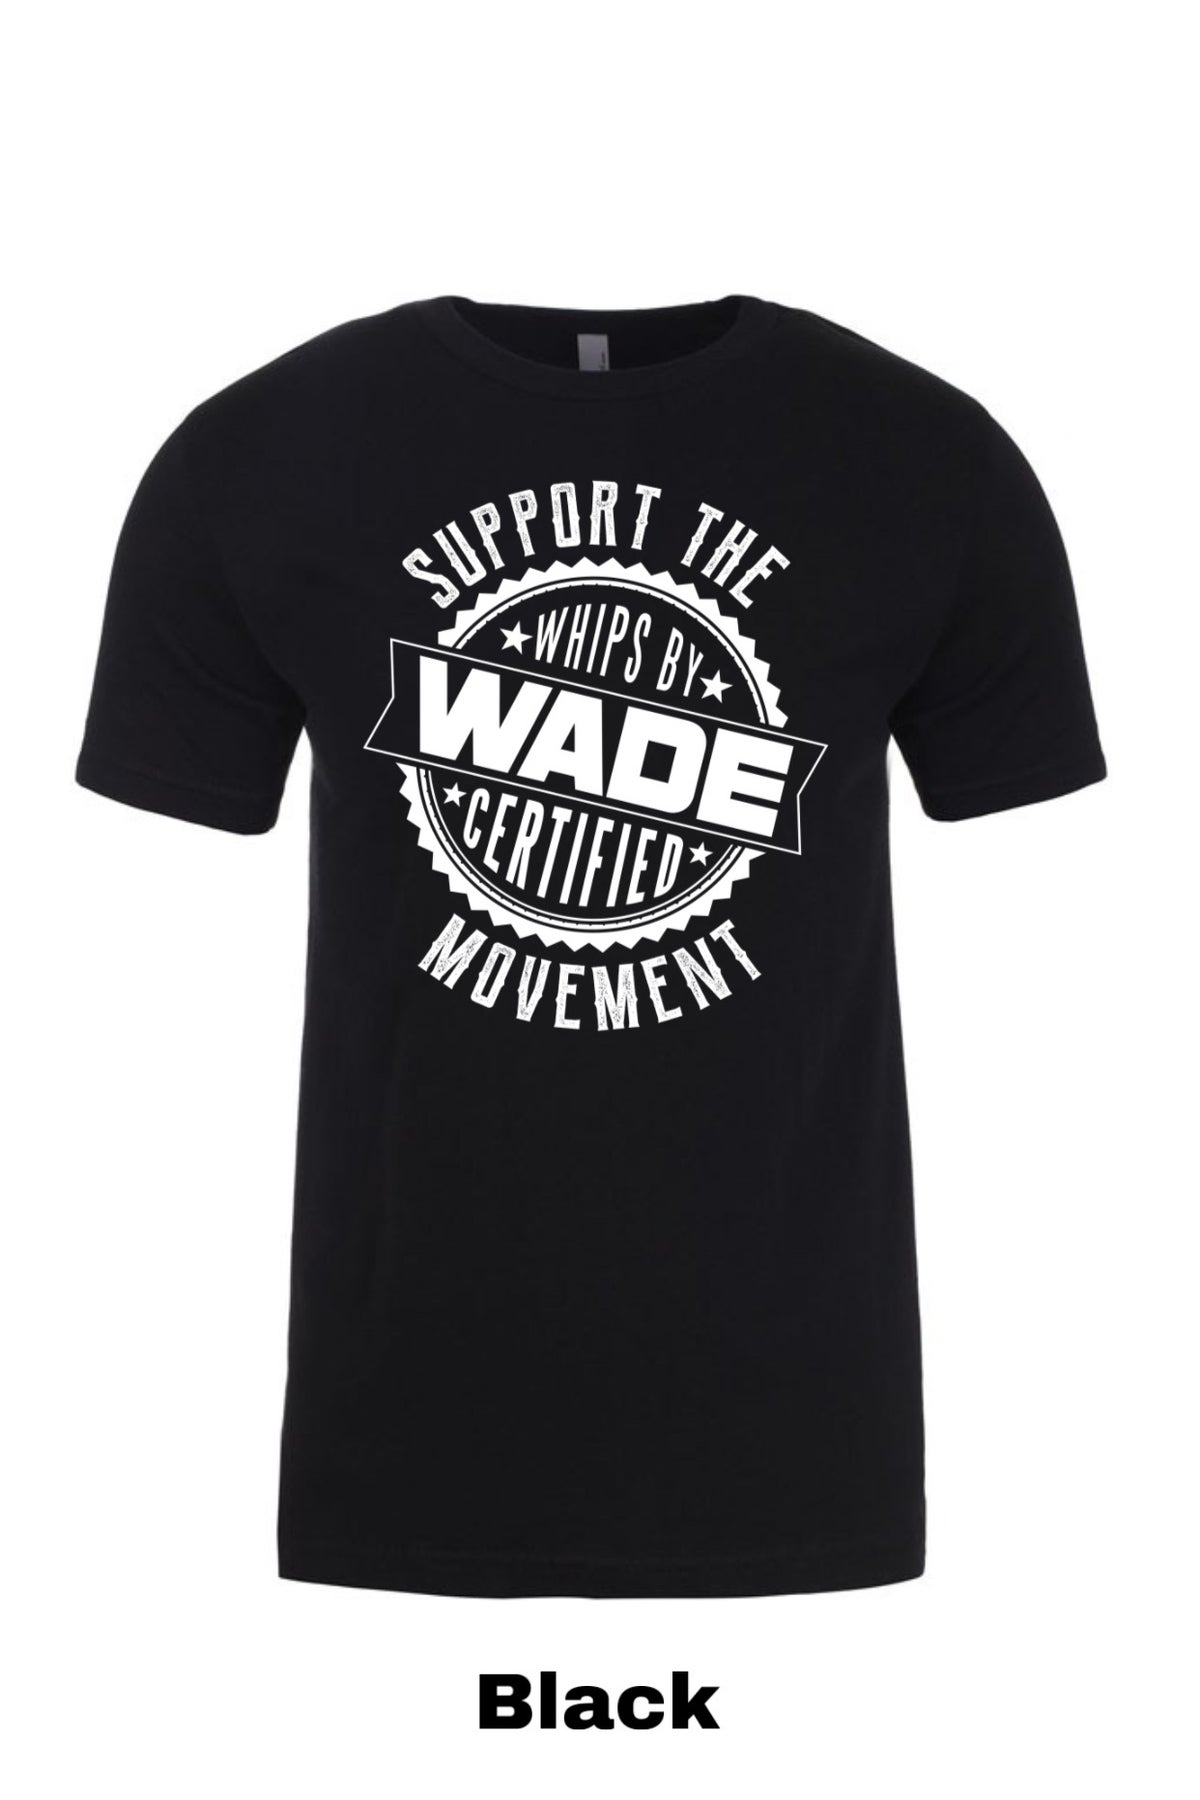 Image of Support The Movement 2020